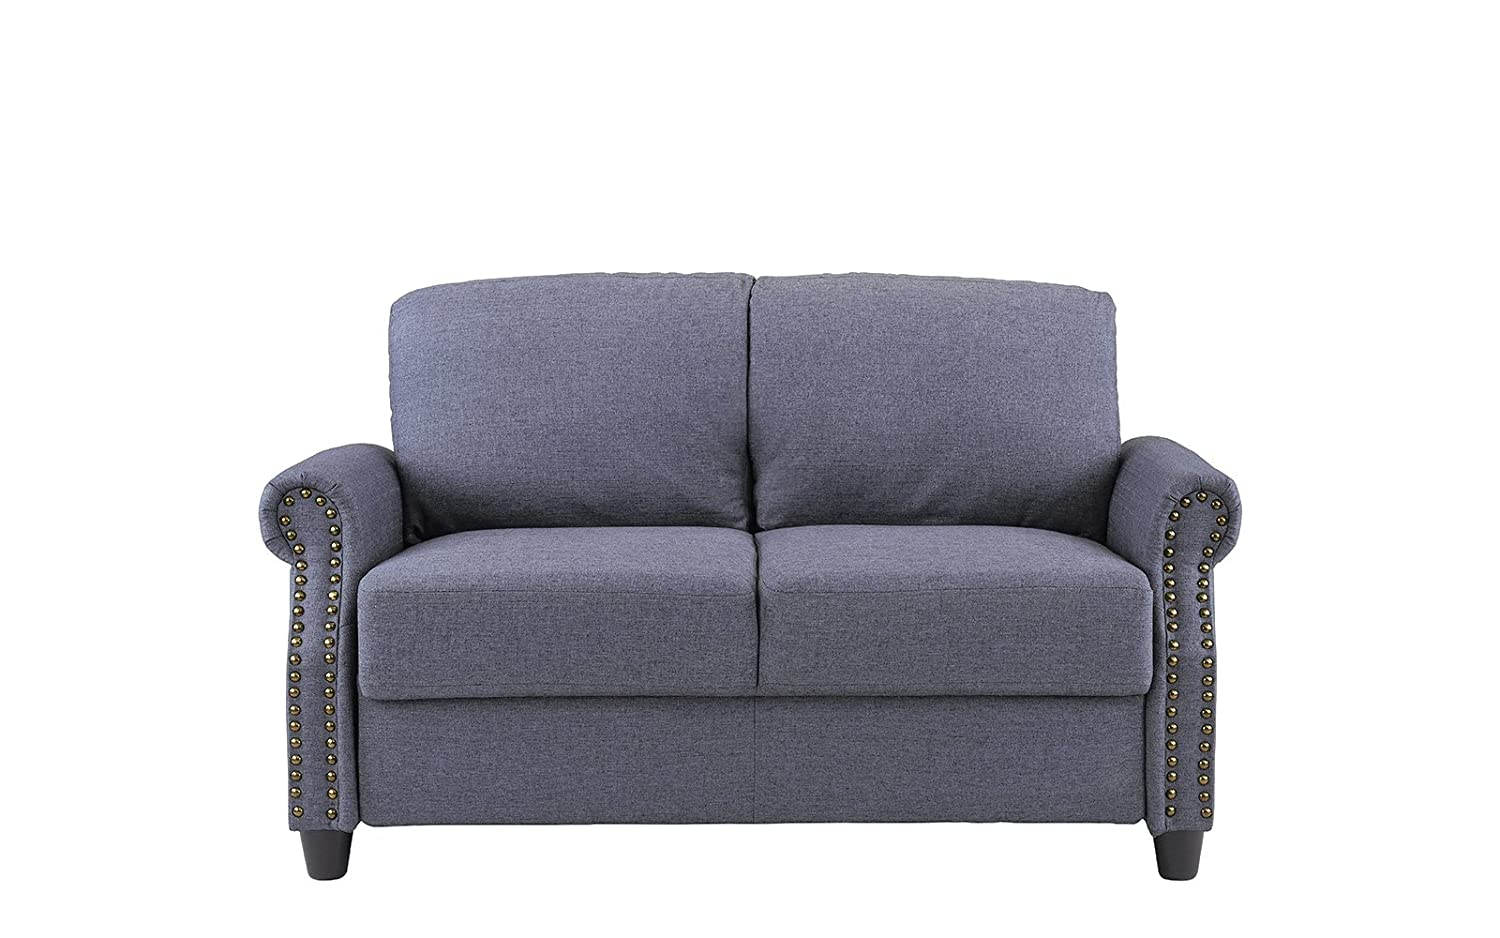 Sofamania Classic Living Room Linen Loveseat with Nailhead Trim and Storage Space Blue